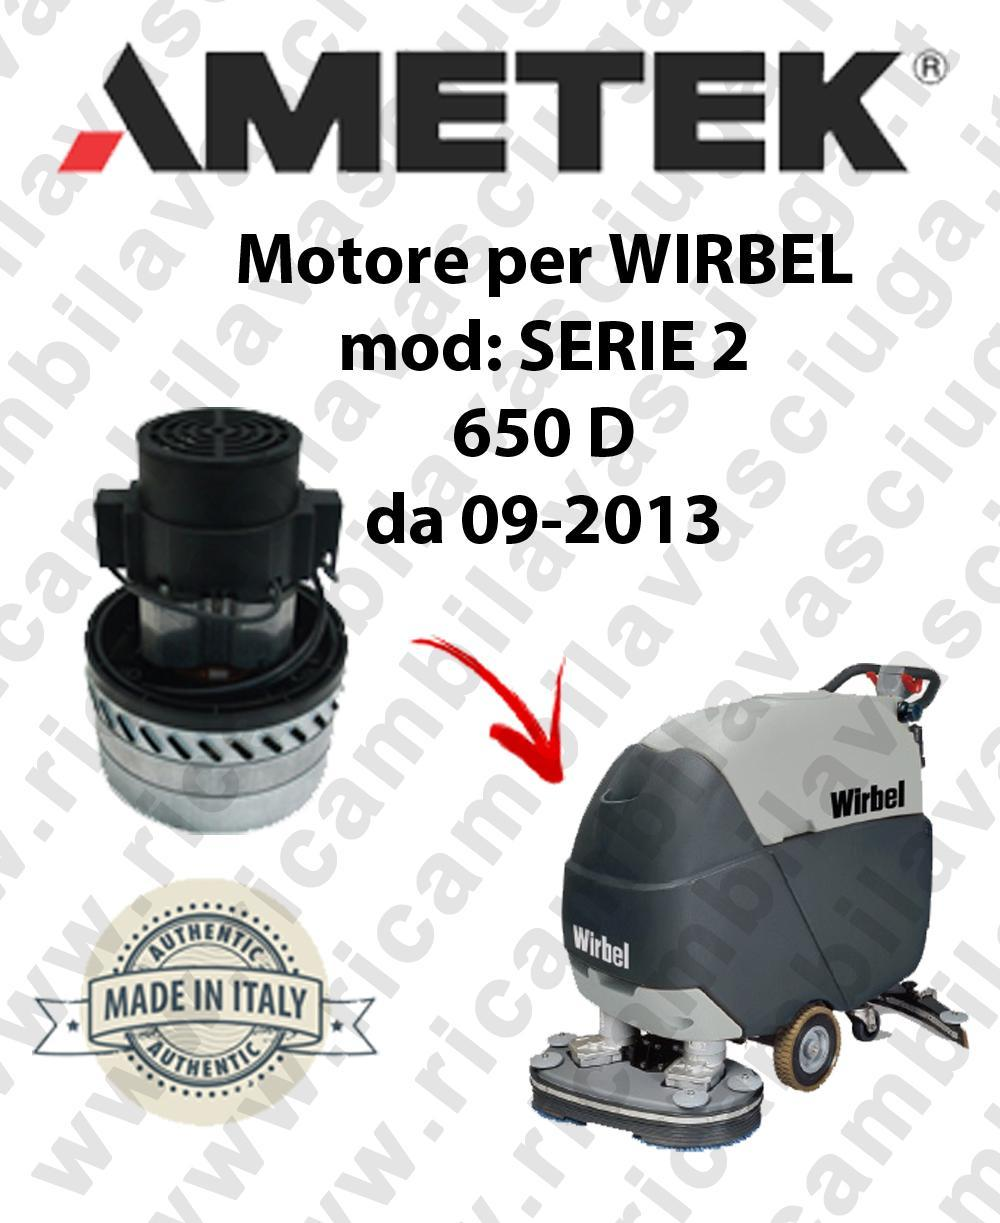 SERIE 2 650 D from 09-2013  Ametek vacuum motor for scrubber dryer WIRBEL